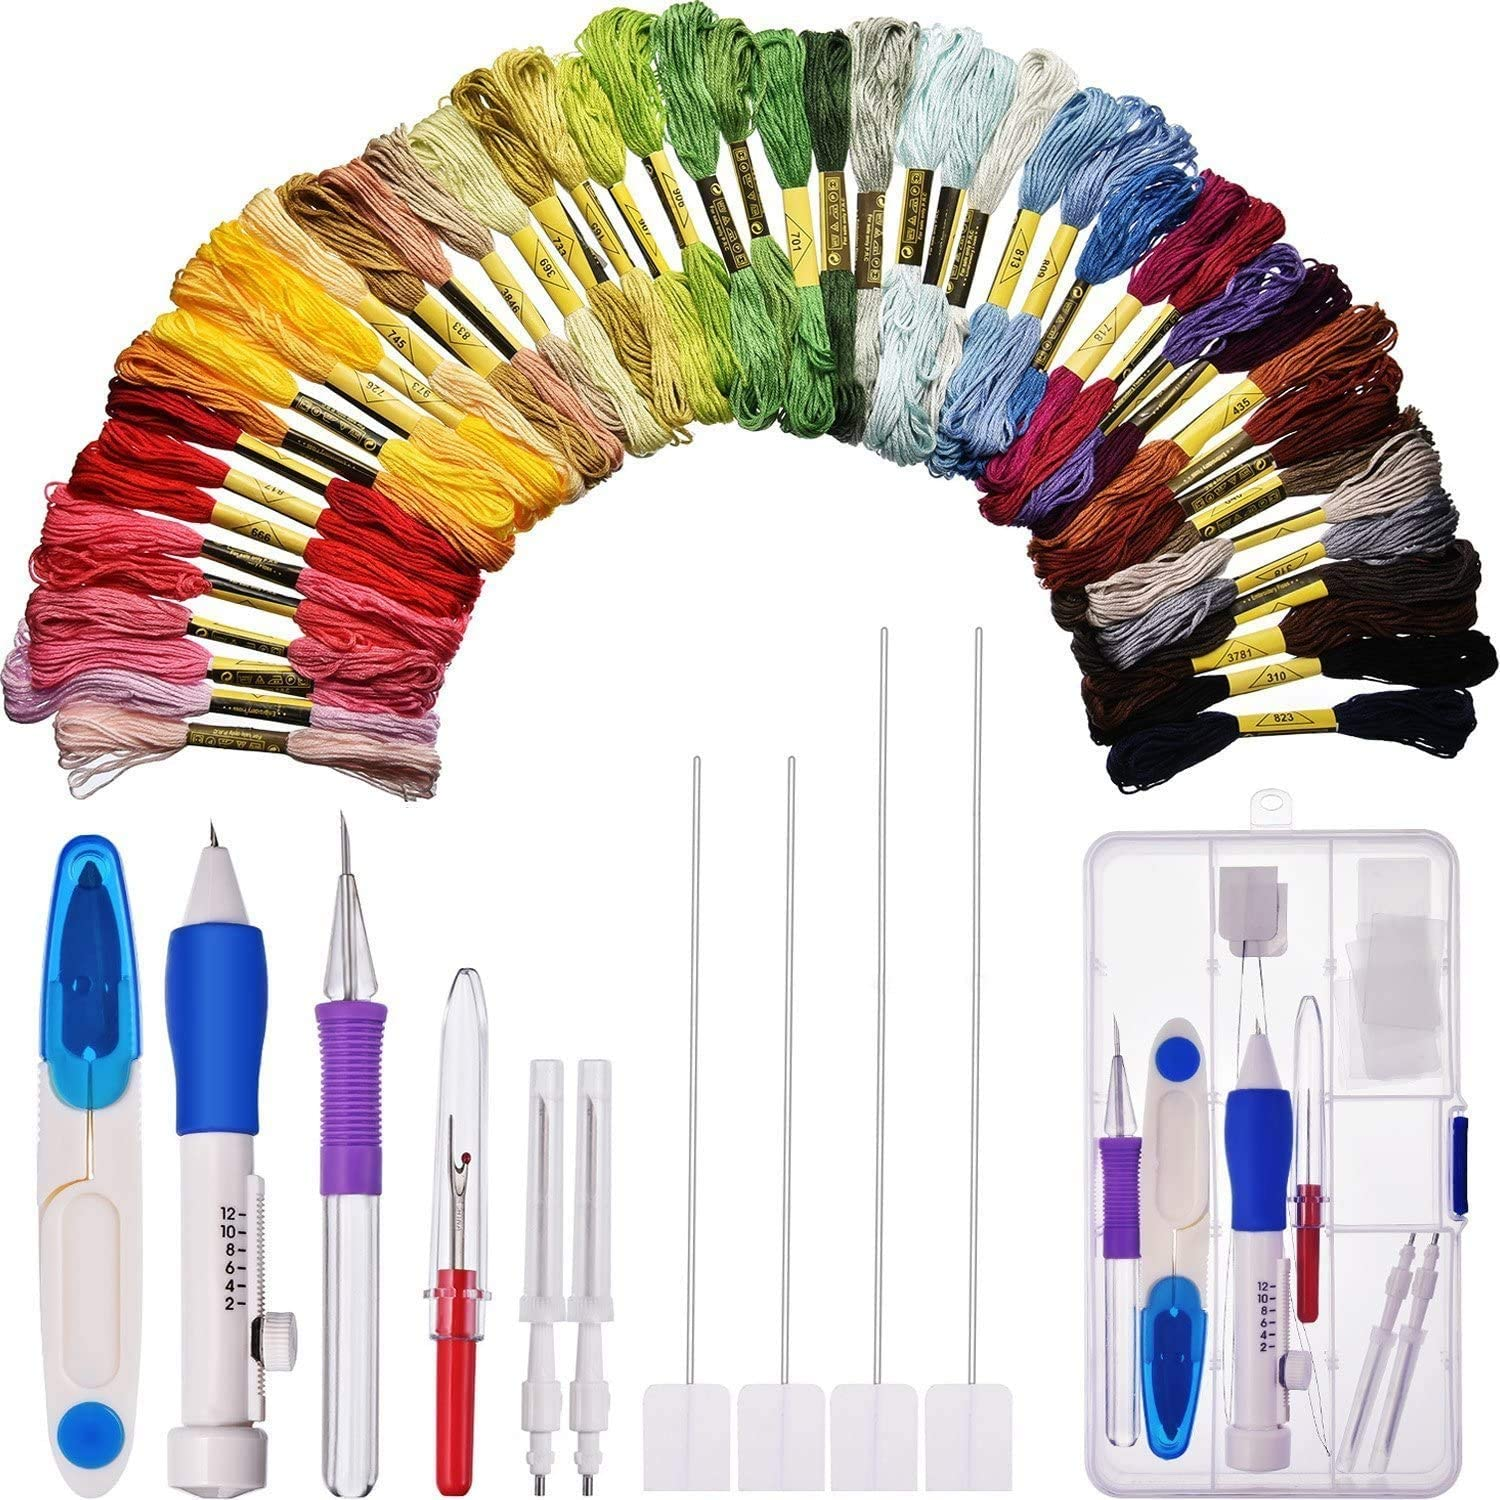 Magic Embroidery Pen Punch Needle Kits Cross Stitch Tools For DIY Sewing Craft